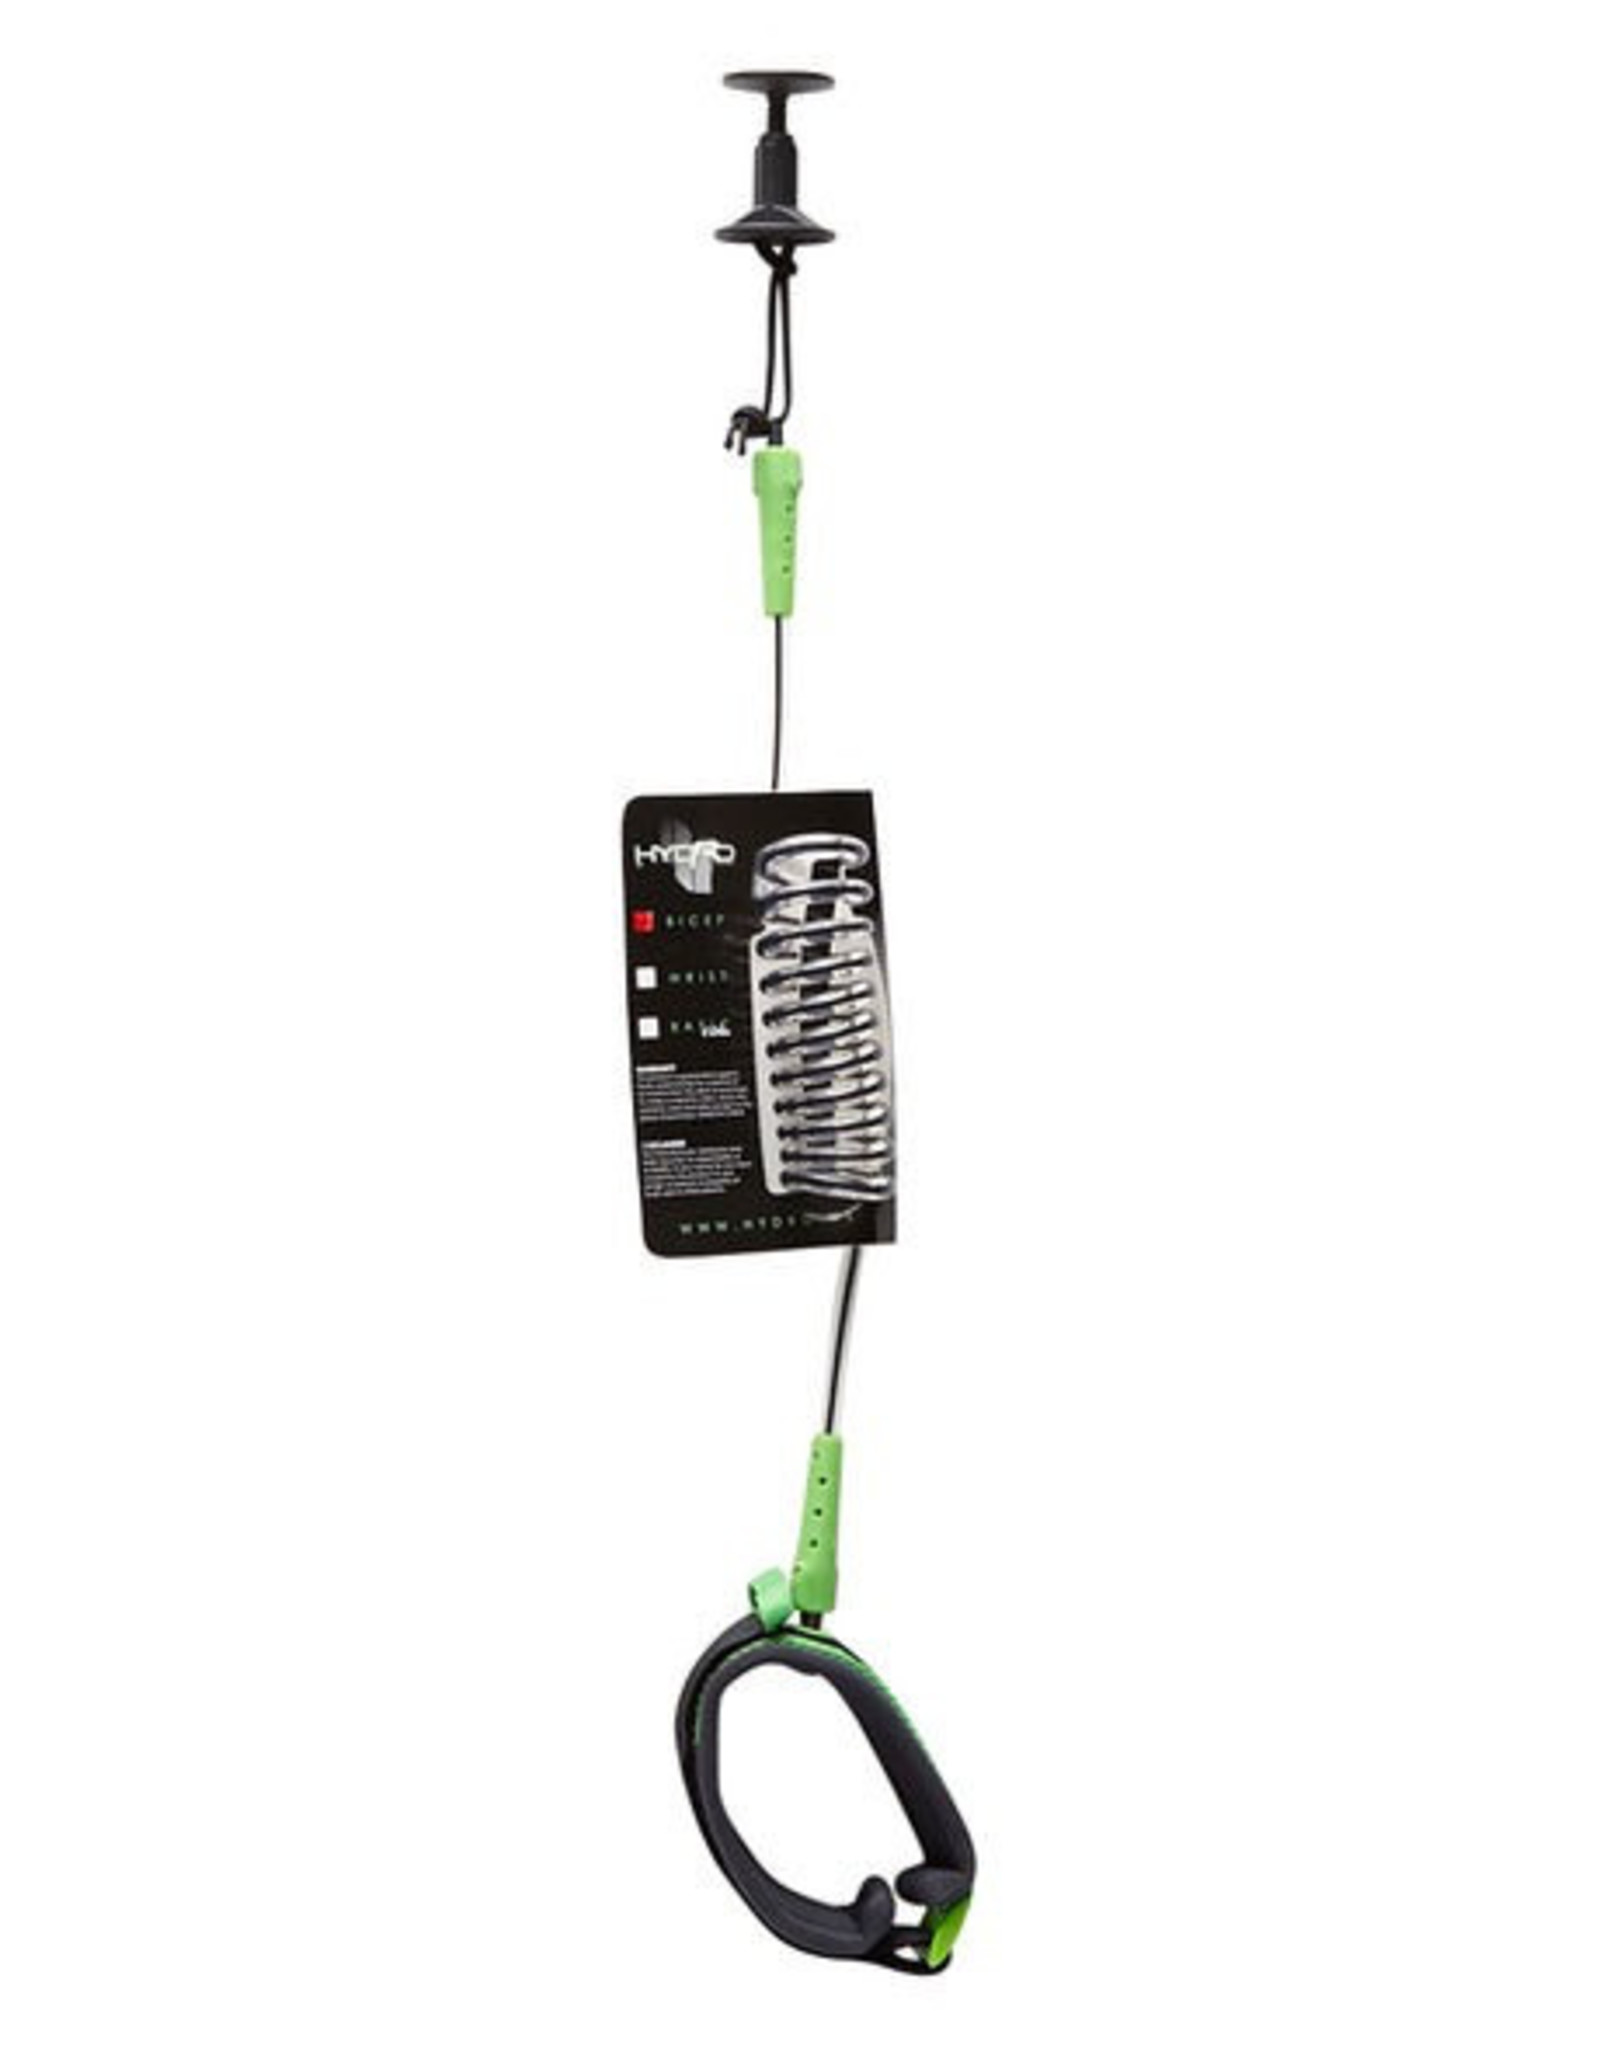 Hydro Hydro - Bodyboard Bicep Leash Charcoal/Green